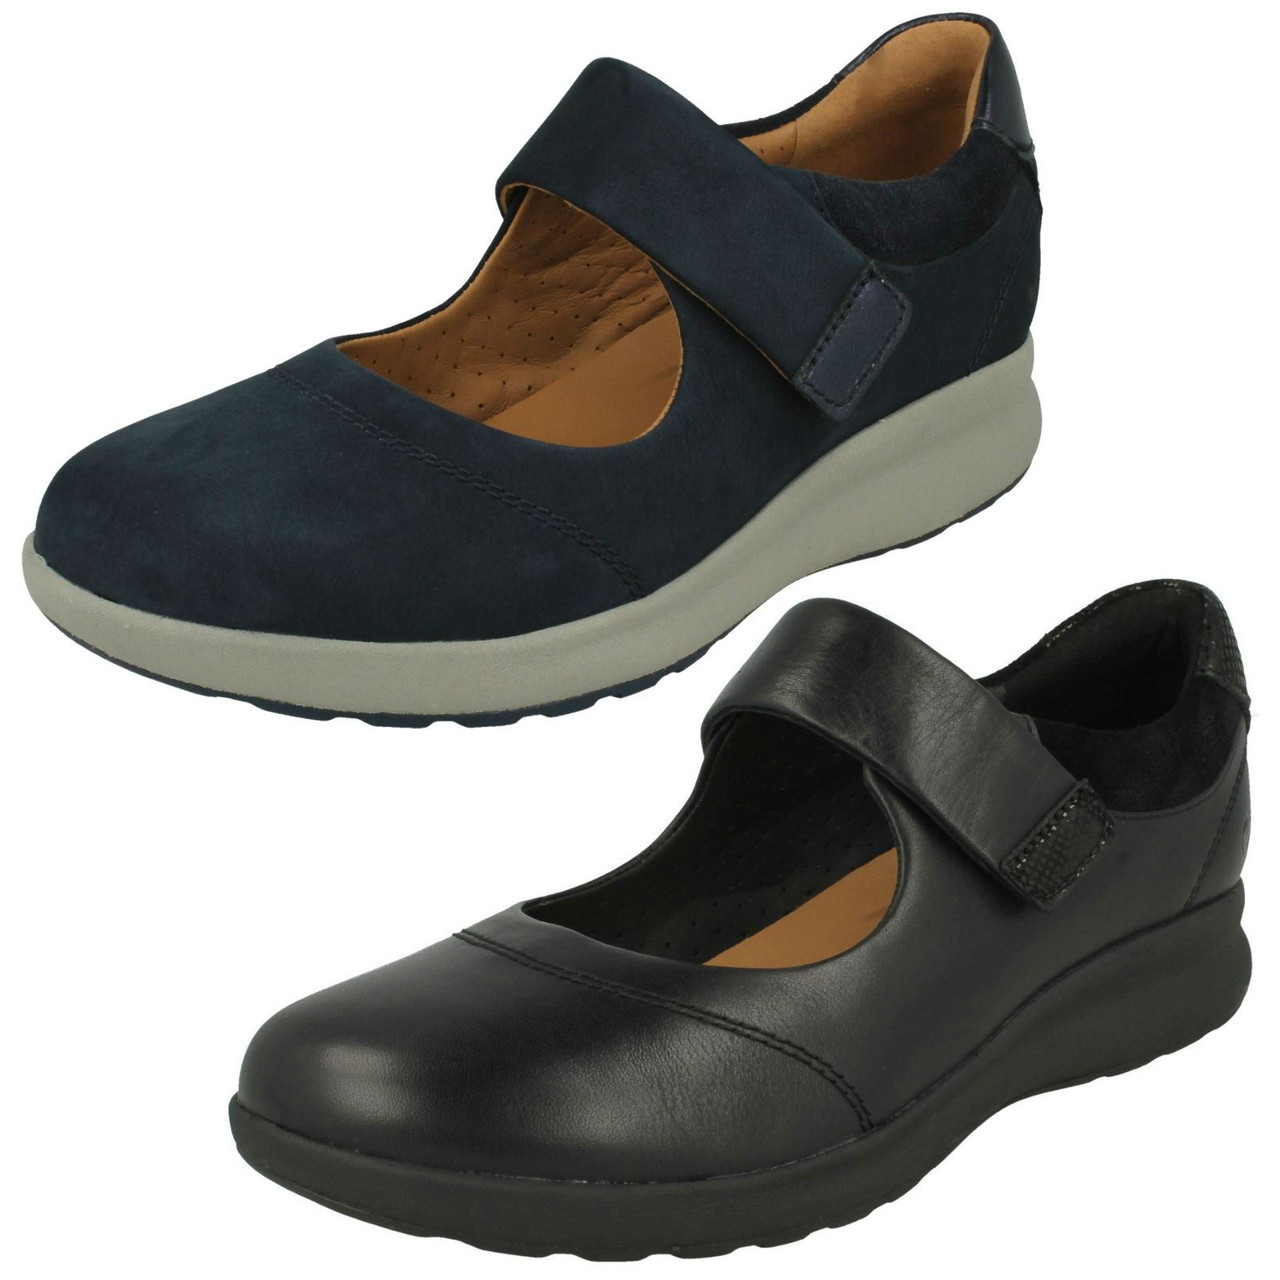 Ladies Clarks Casual Flat Mary Jane